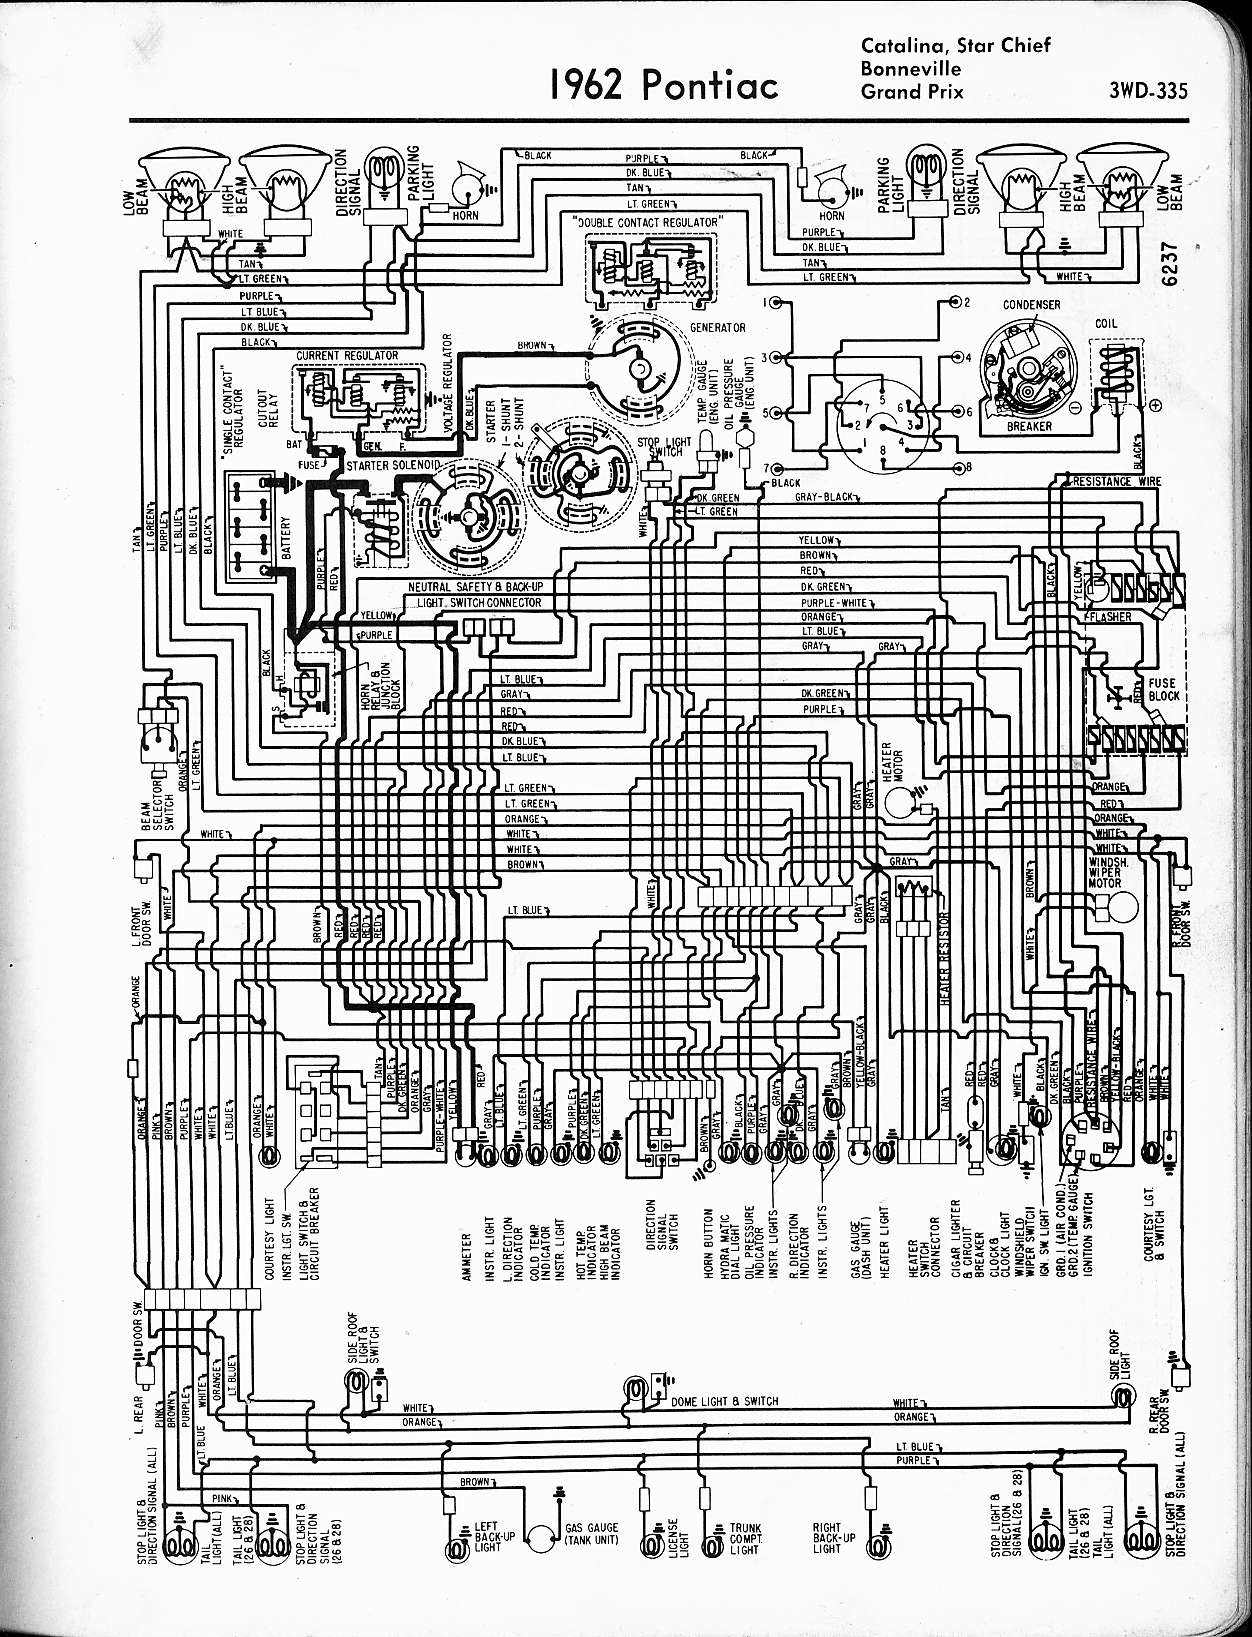 Miraculous 1958 Pontiac Chieftain Wiring Diagram Wiring Diagram Wiring Cloud Dulfrecoveryedborg